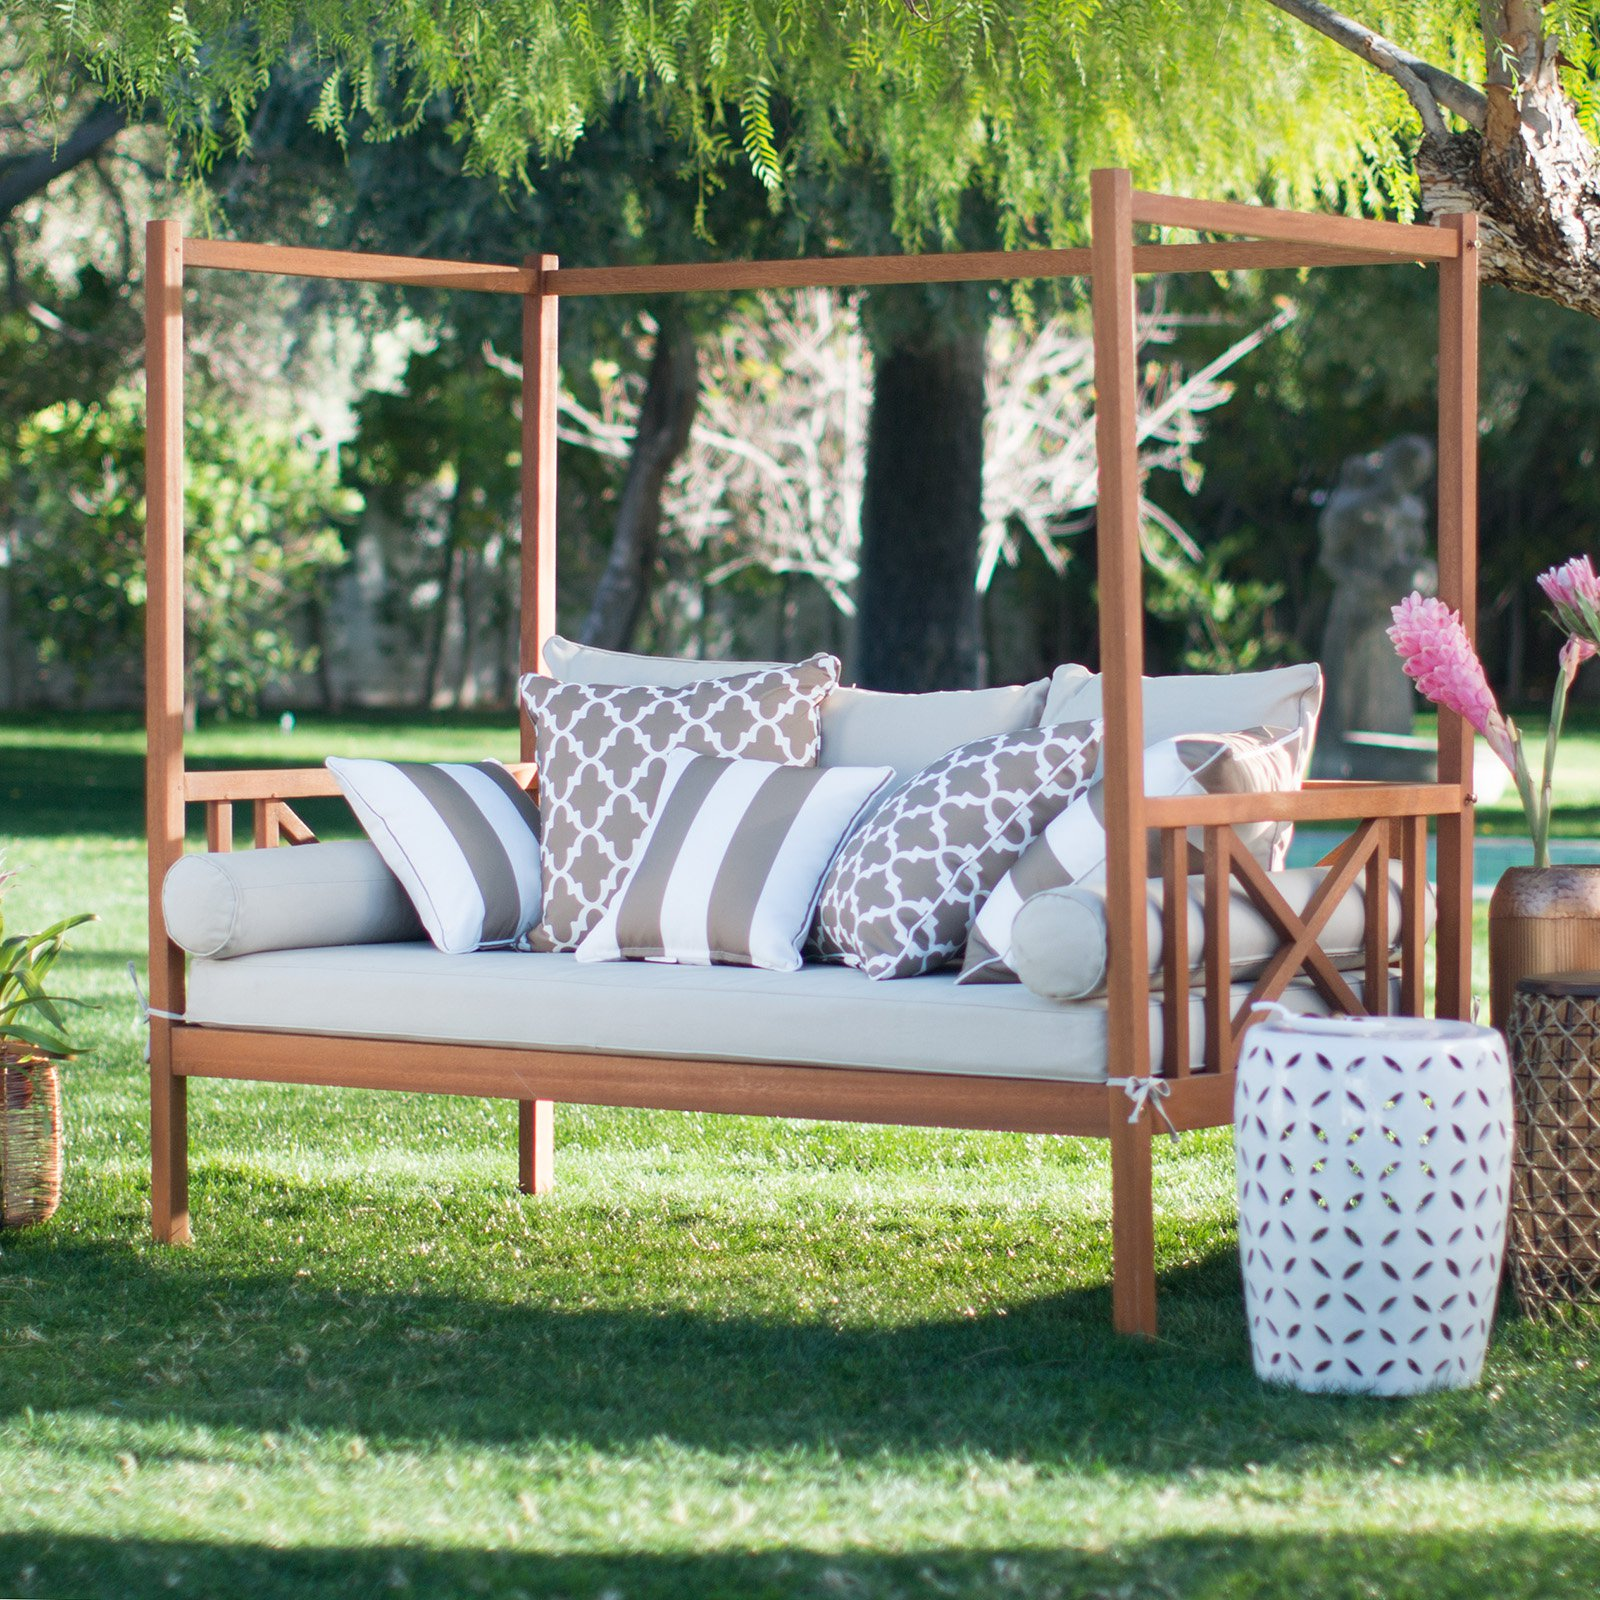 belham living brighton outdoor daybed and ottoman - natural - outdoor  daybeds QPJRAVE